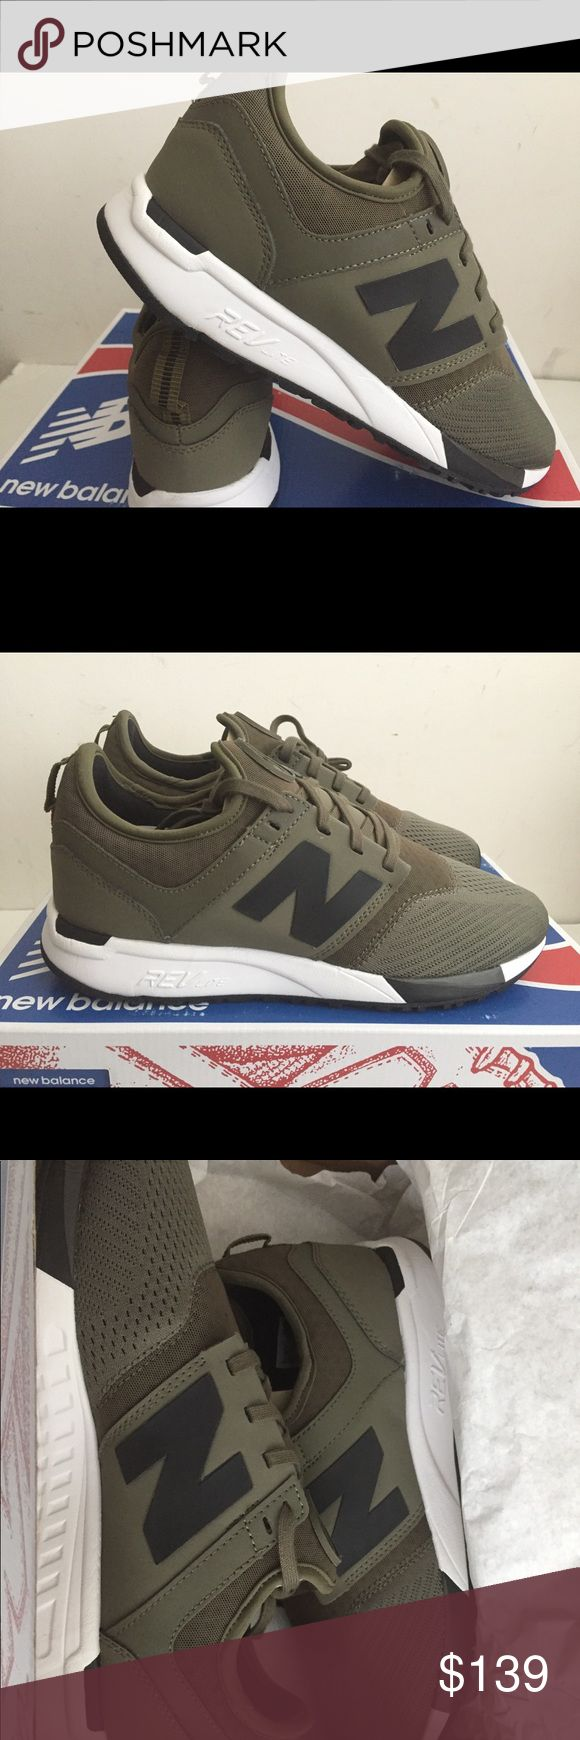 New balance NB247 olive black New with box size 8 New Balance Shoes Sneakers